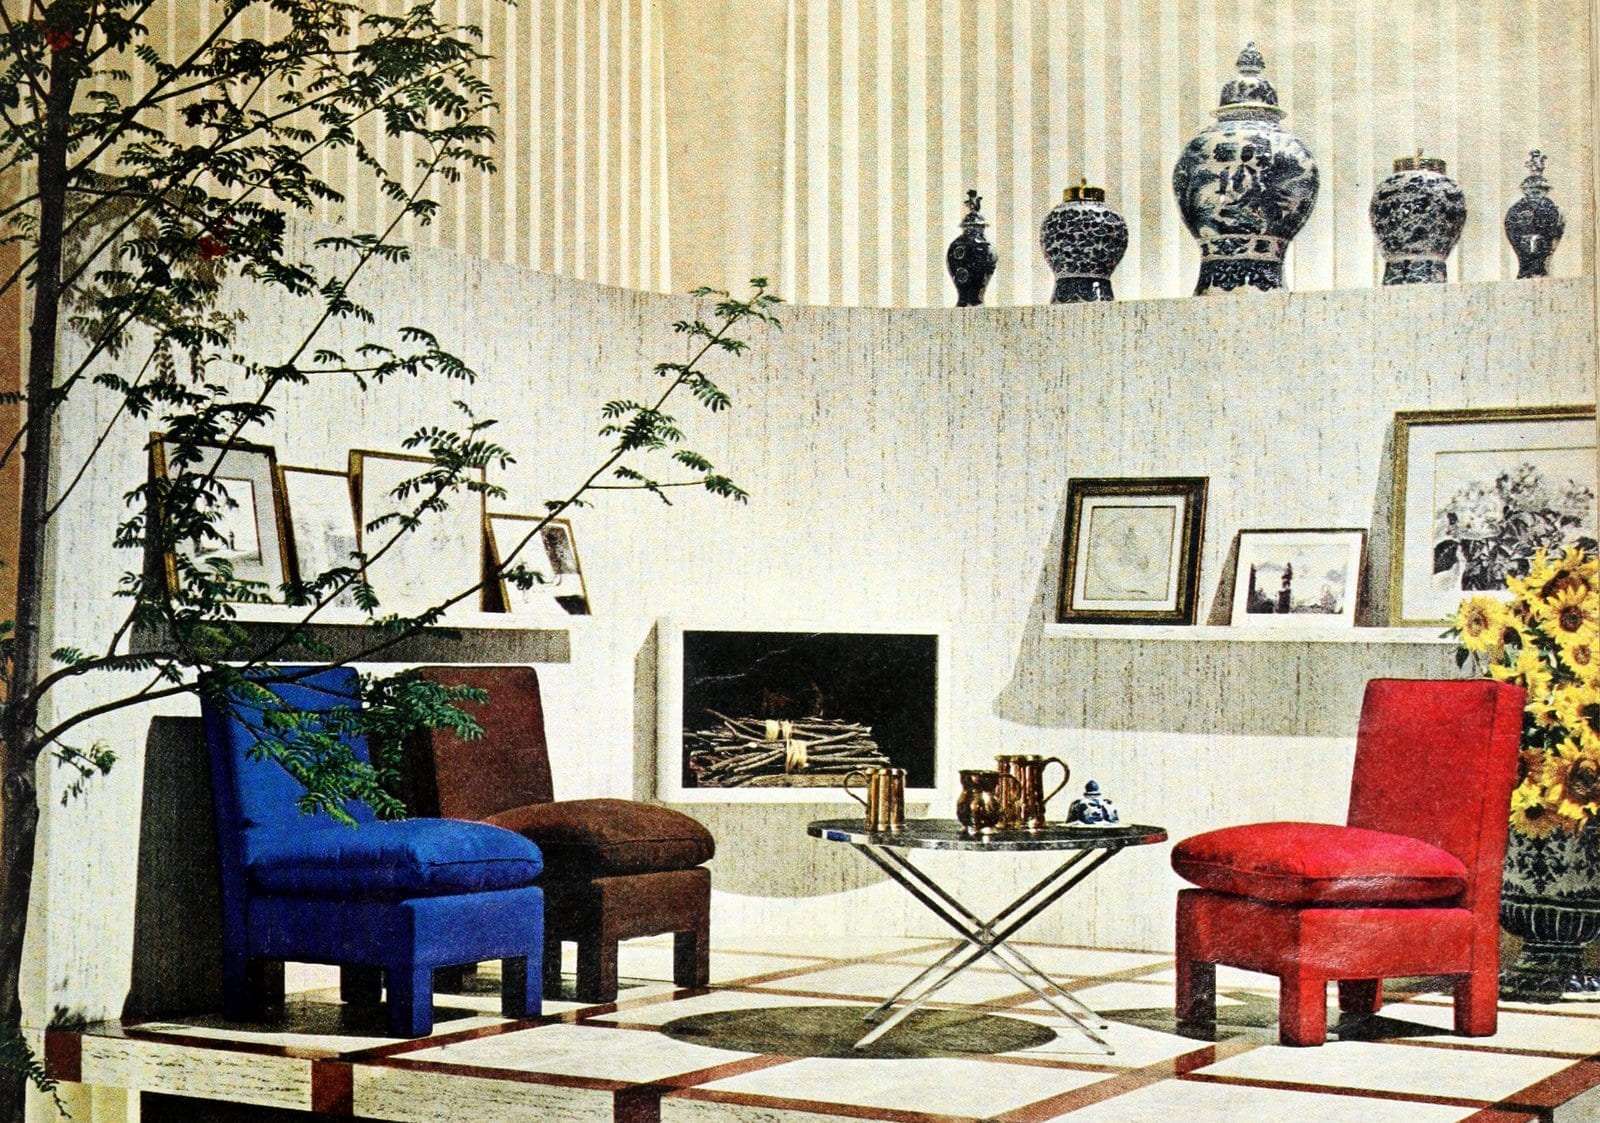 Solid-color chairs with matching cushions - Home decor from 1964